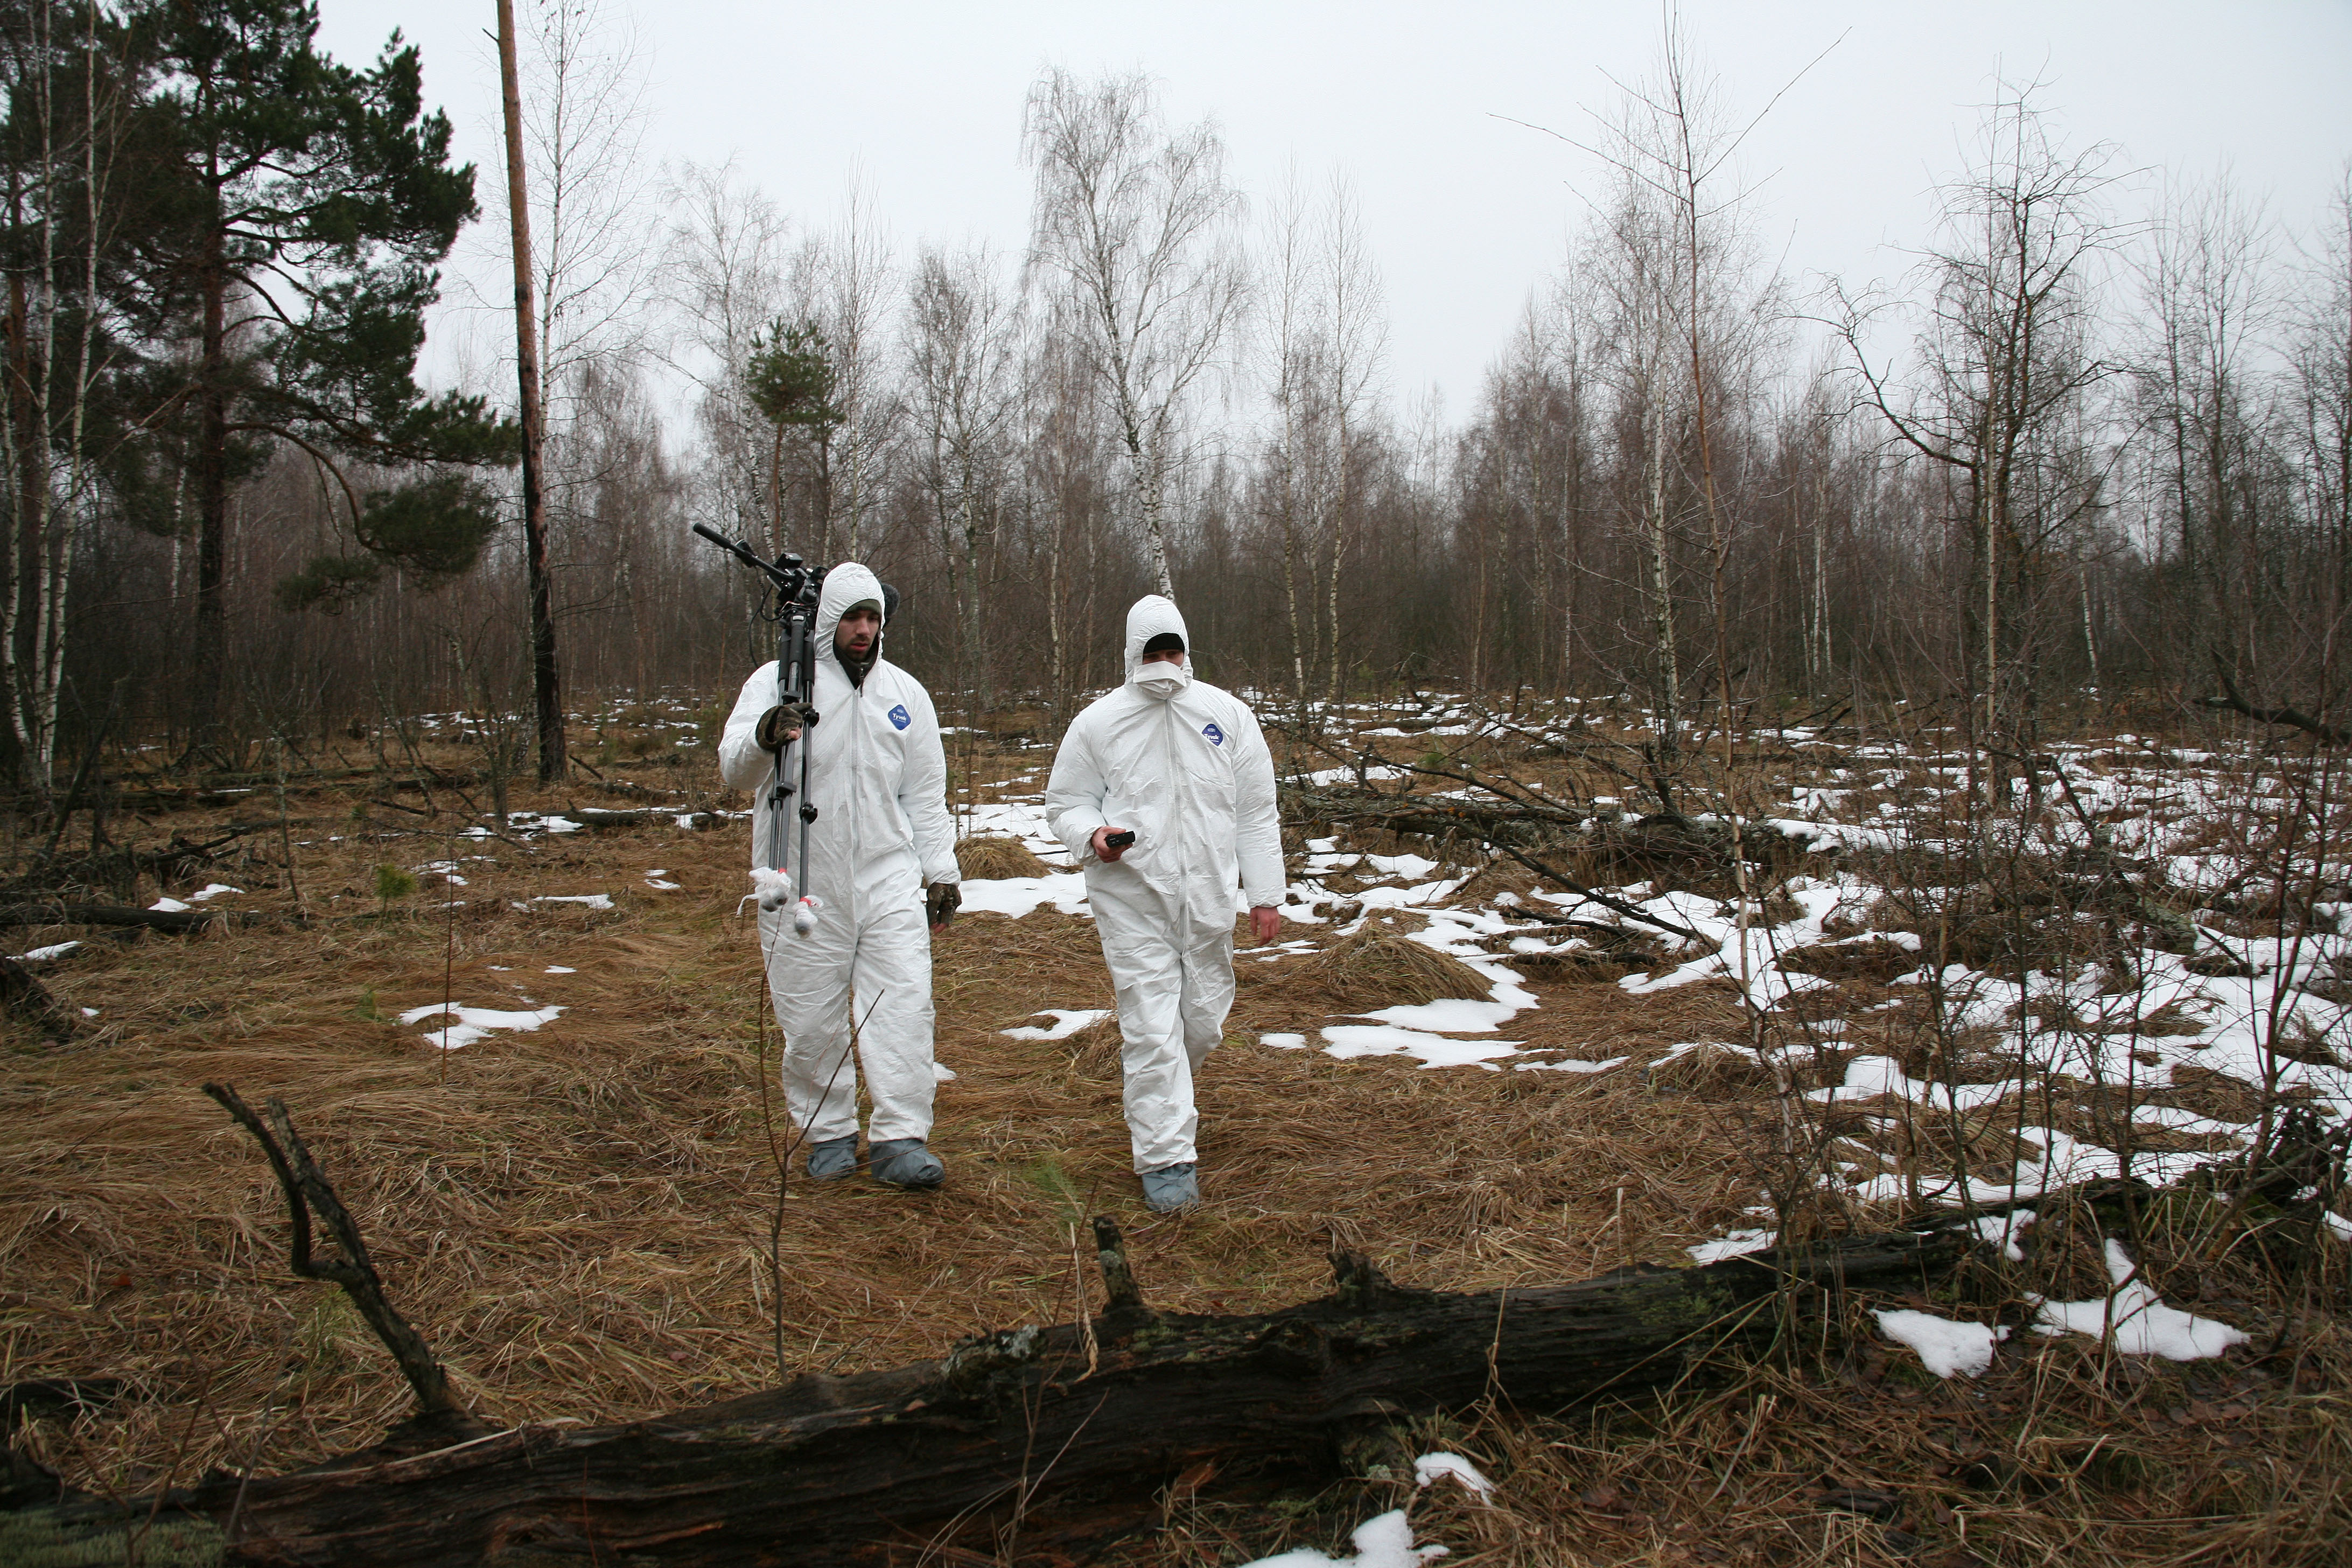 Michael and Stefan strolling through the Red Forest of Chernobyl